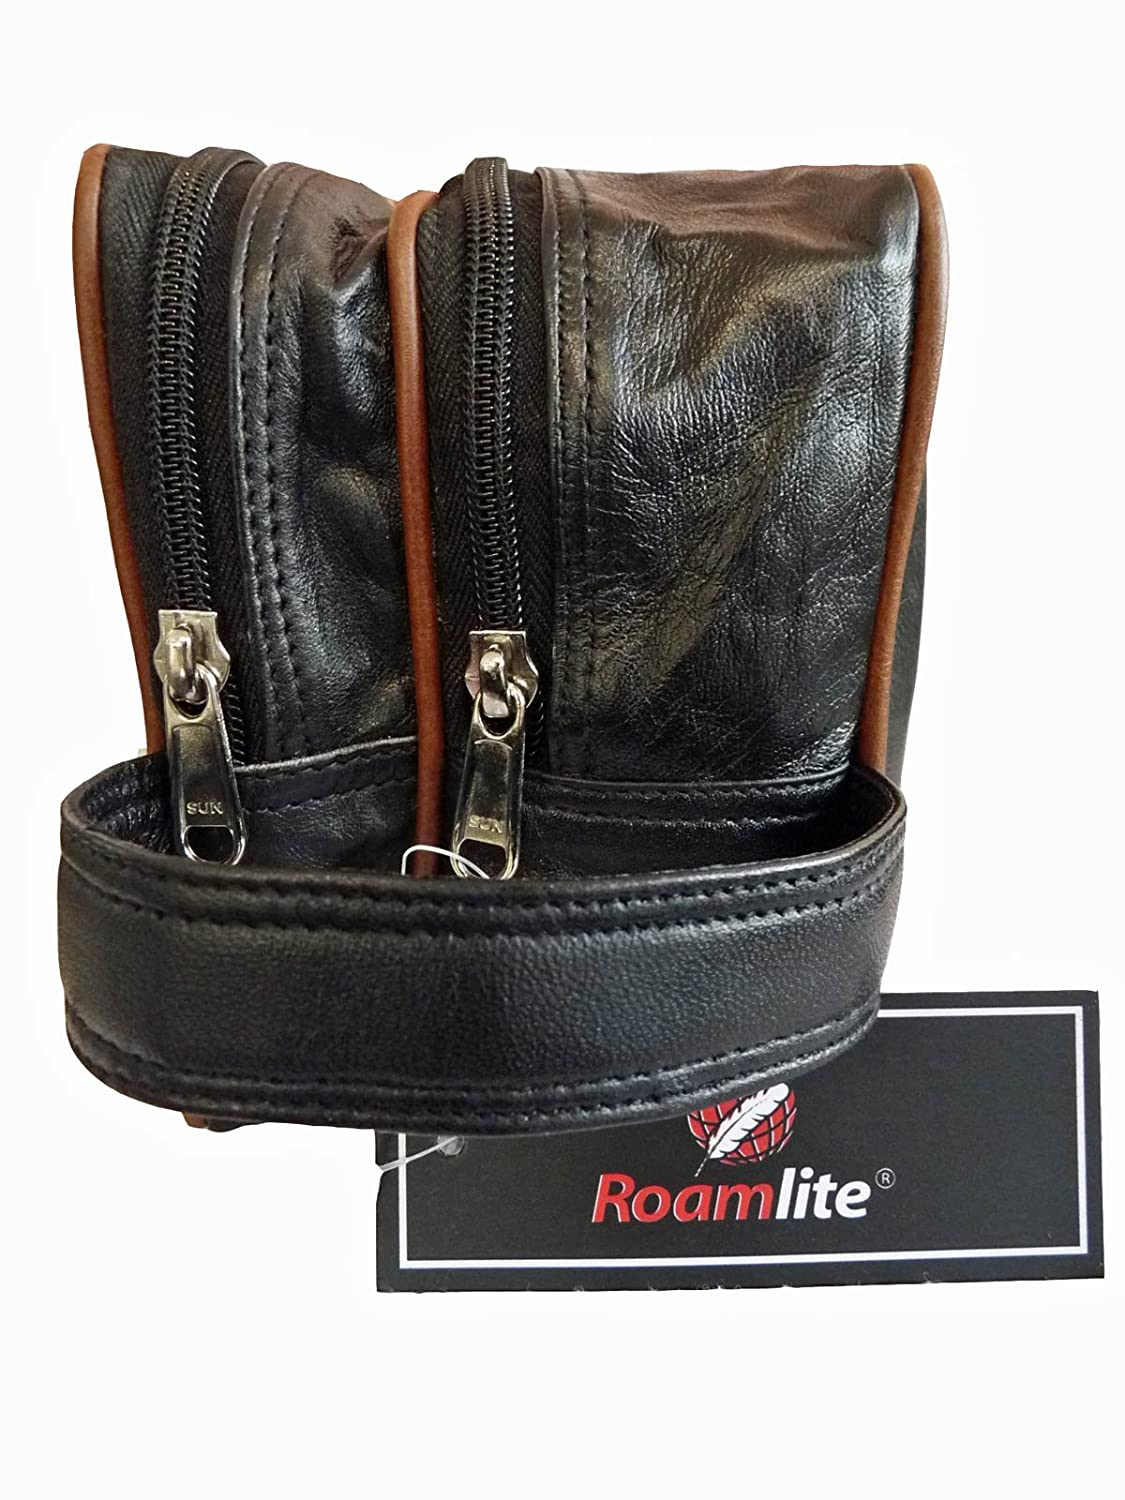 59c516509a Leather 2 Tone Toiletry Wash Bag for Toiletries - Holiday Travel Washbag -  Suitable as Men s or Ladies - 3 Zipped Sections - RL155  Amazon.co.uk   Luggage